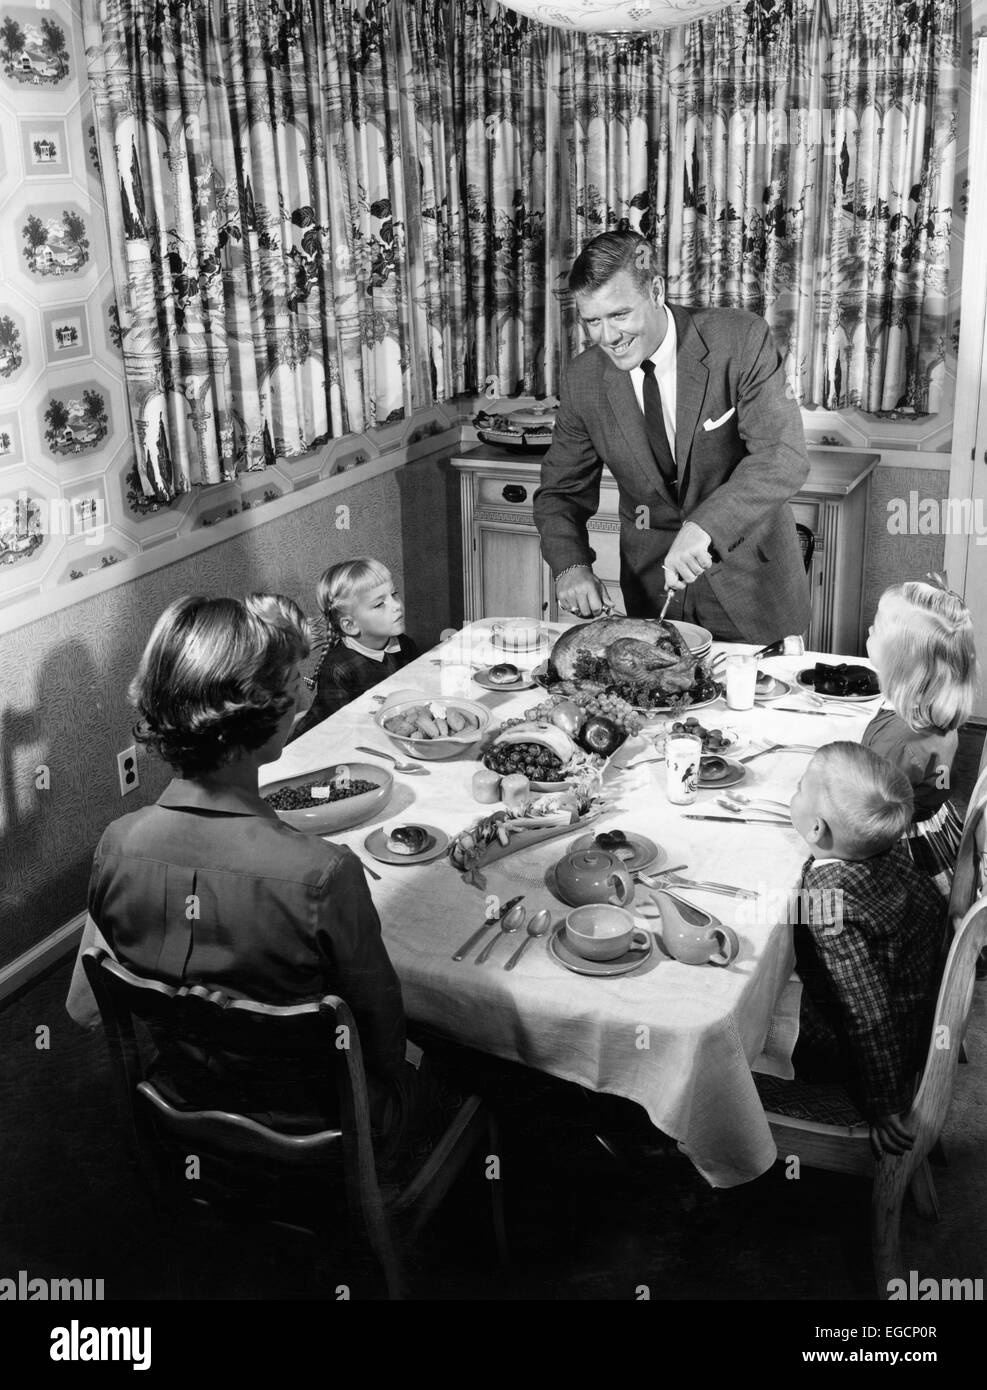 1950s FAMILY OF 5 THANKSGIVING HOLIDAY MEAL MOM DAD MAN WOMAN 3 KIDS BOYS GIRLS AT DINING ROOM TABLE FATHER CARVING - Stock Image